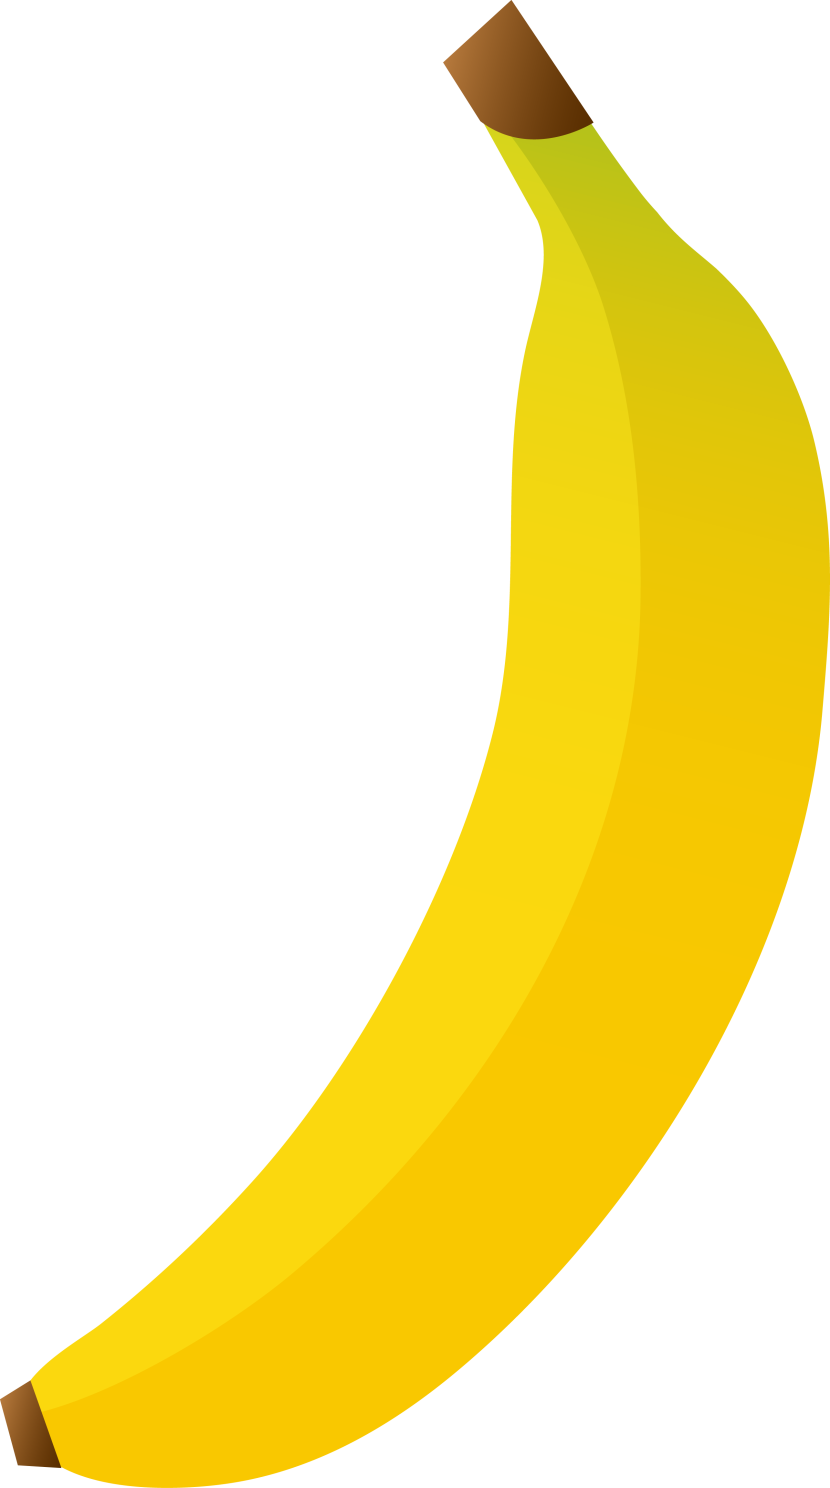 Free bananas clipart graphics images and photos 2.